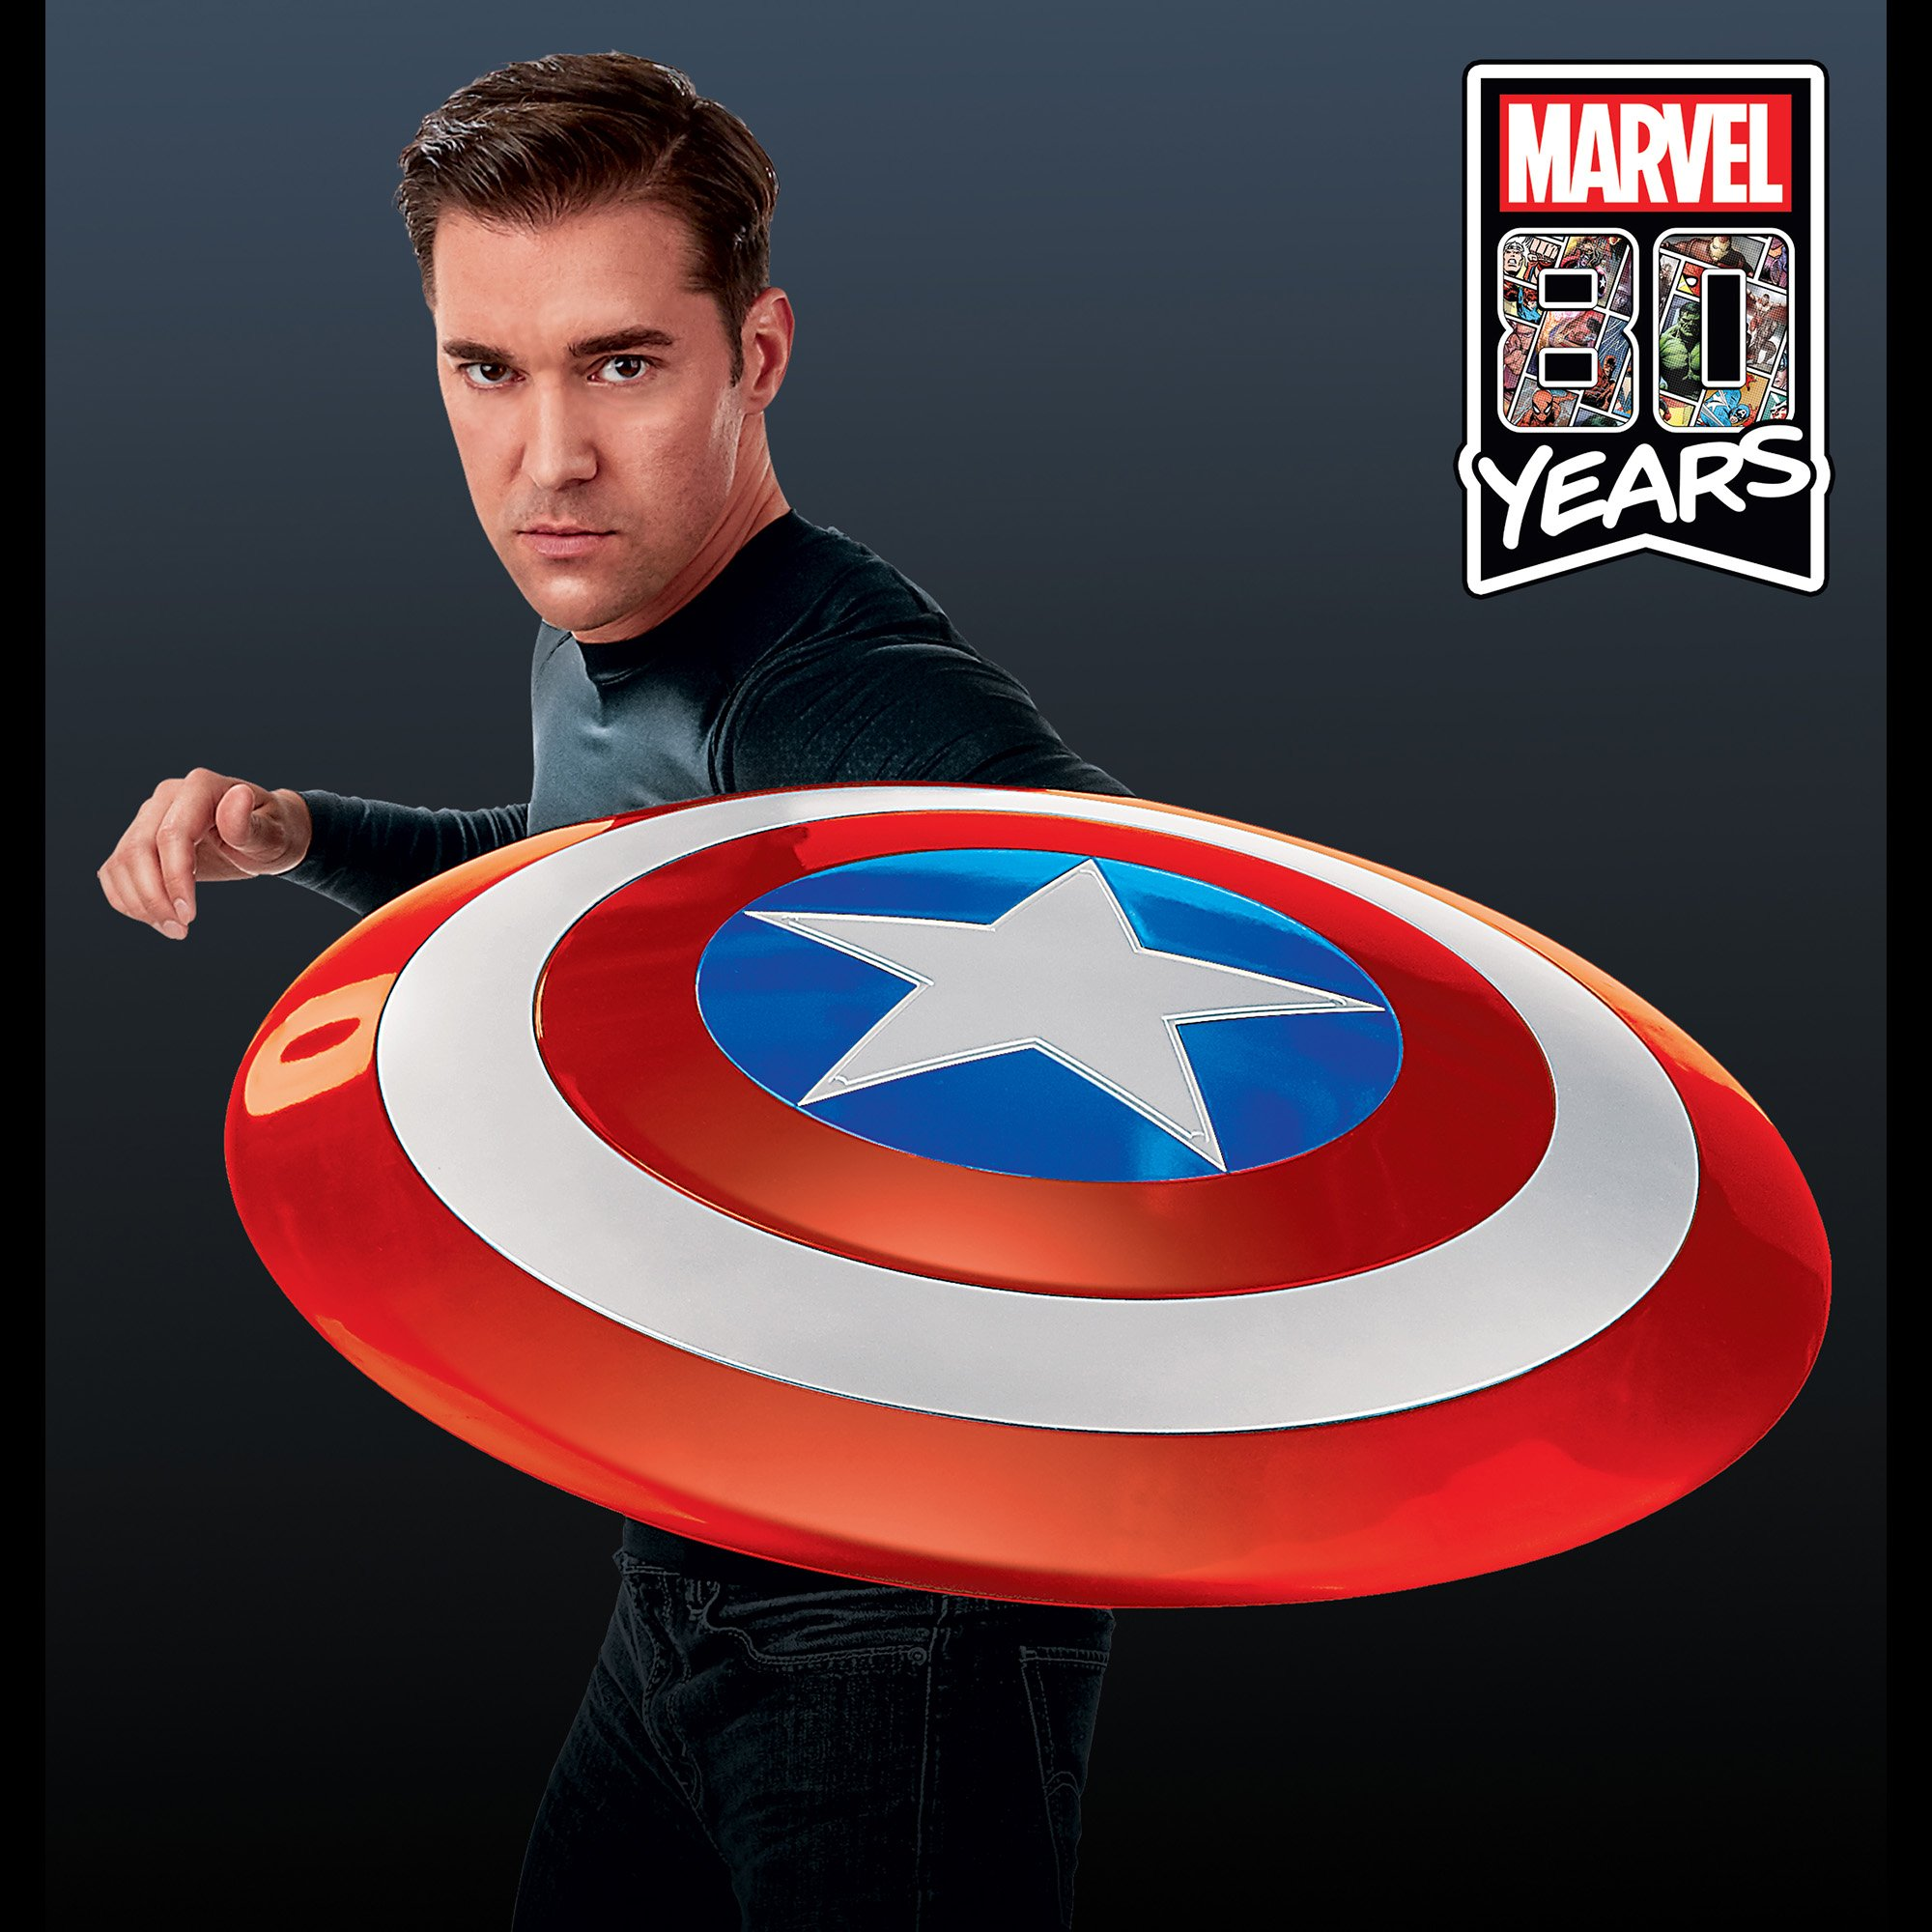 Captain America shield created for Marvel's 80th anniversary celebration